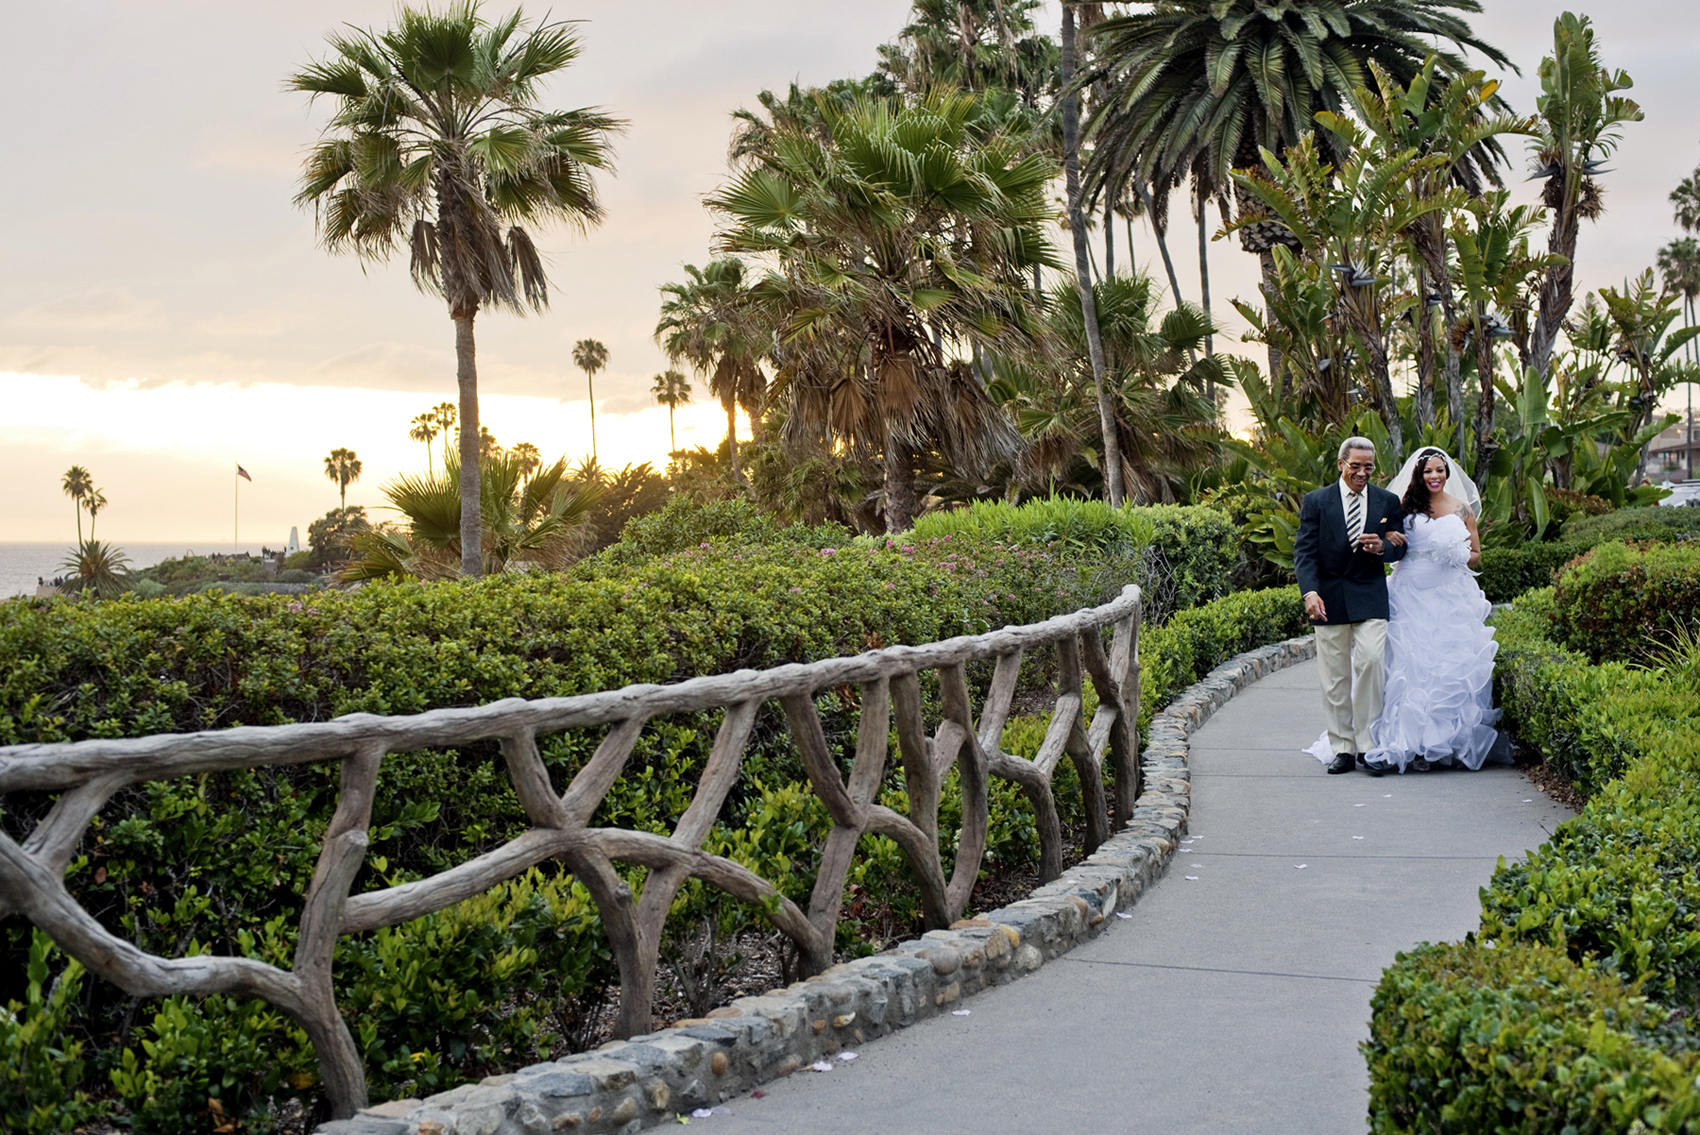 Lionel Hubbard, 47, from Long Beach, CA, marries his bride, Shannon Fowler, 38, from Long Beach, CA on Saturday, May 14, 2016 at the Laguna Beach Gazebo in Laguna Beach, CA in front of their closest friends and family members.  The bride and groom lived across from each other in the same apartment community for three years, never meeting.  Then one day, Fowler locked herself out and asked Hubbard for help.  The rest is history.